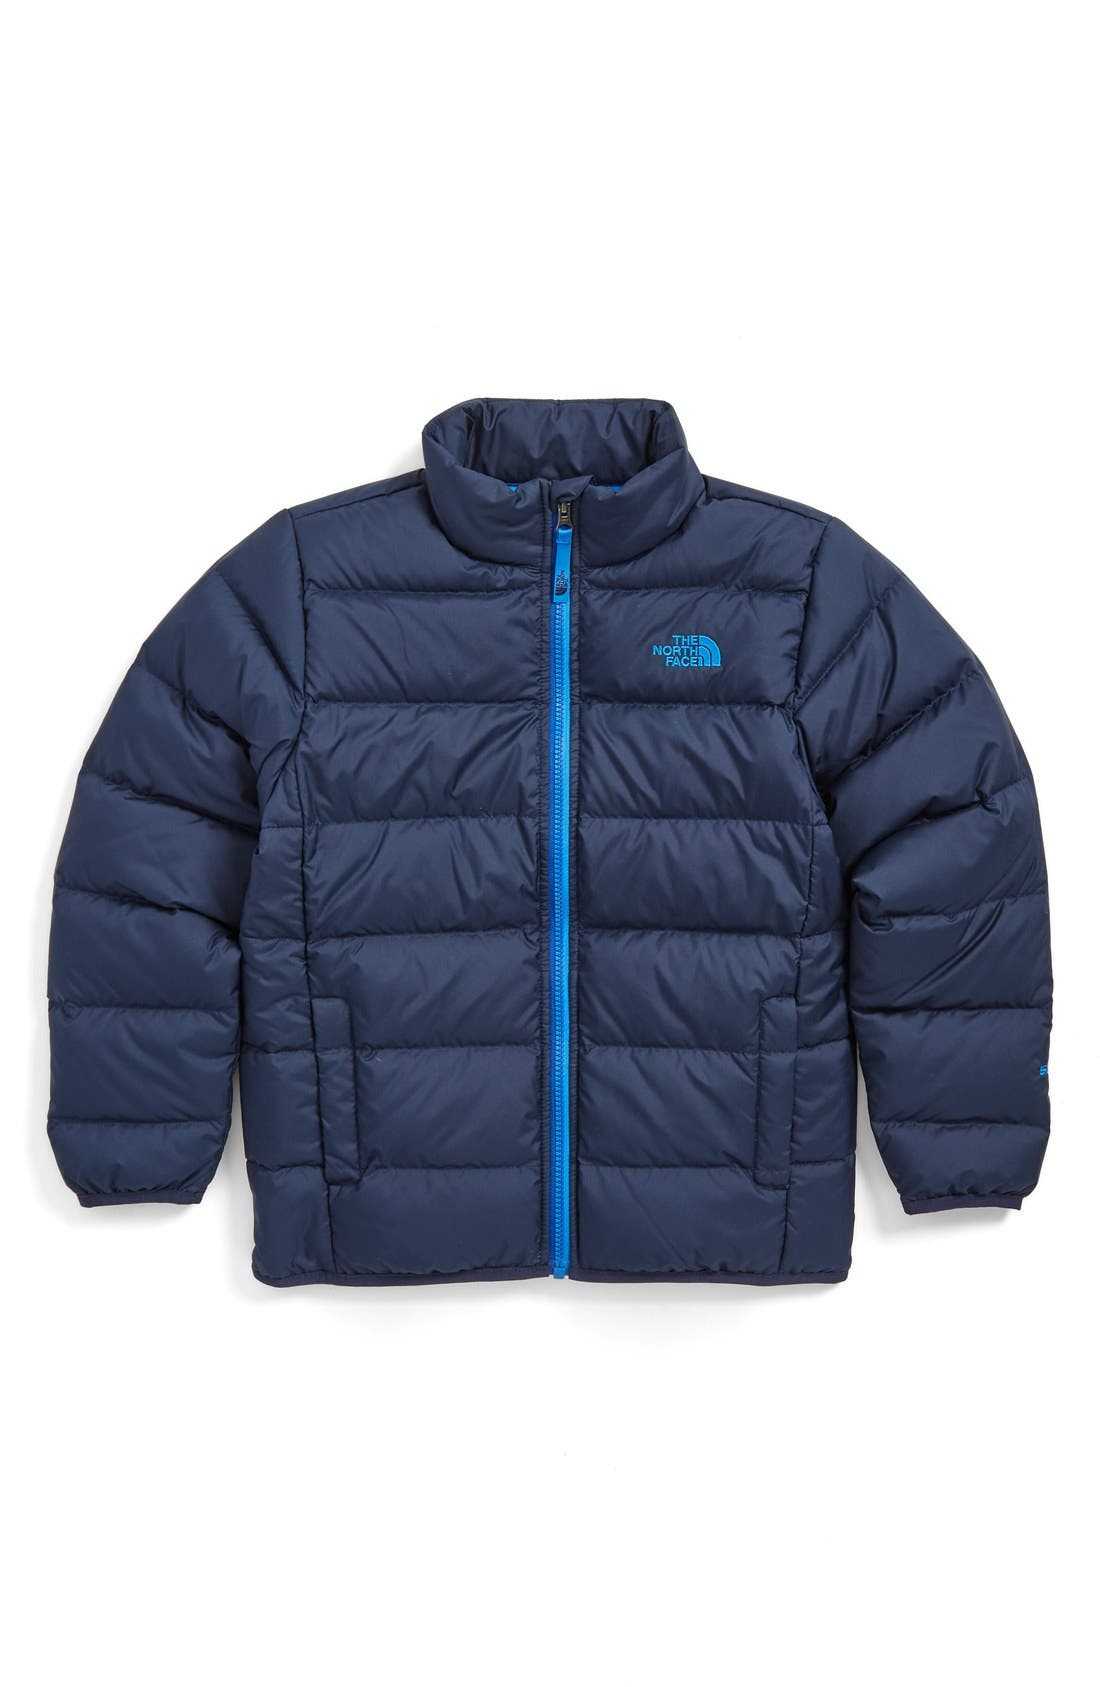 Main Image - The North Face 'Andes' Water Resistant 550-Fill Compressible Down Jacket (Big Boys)